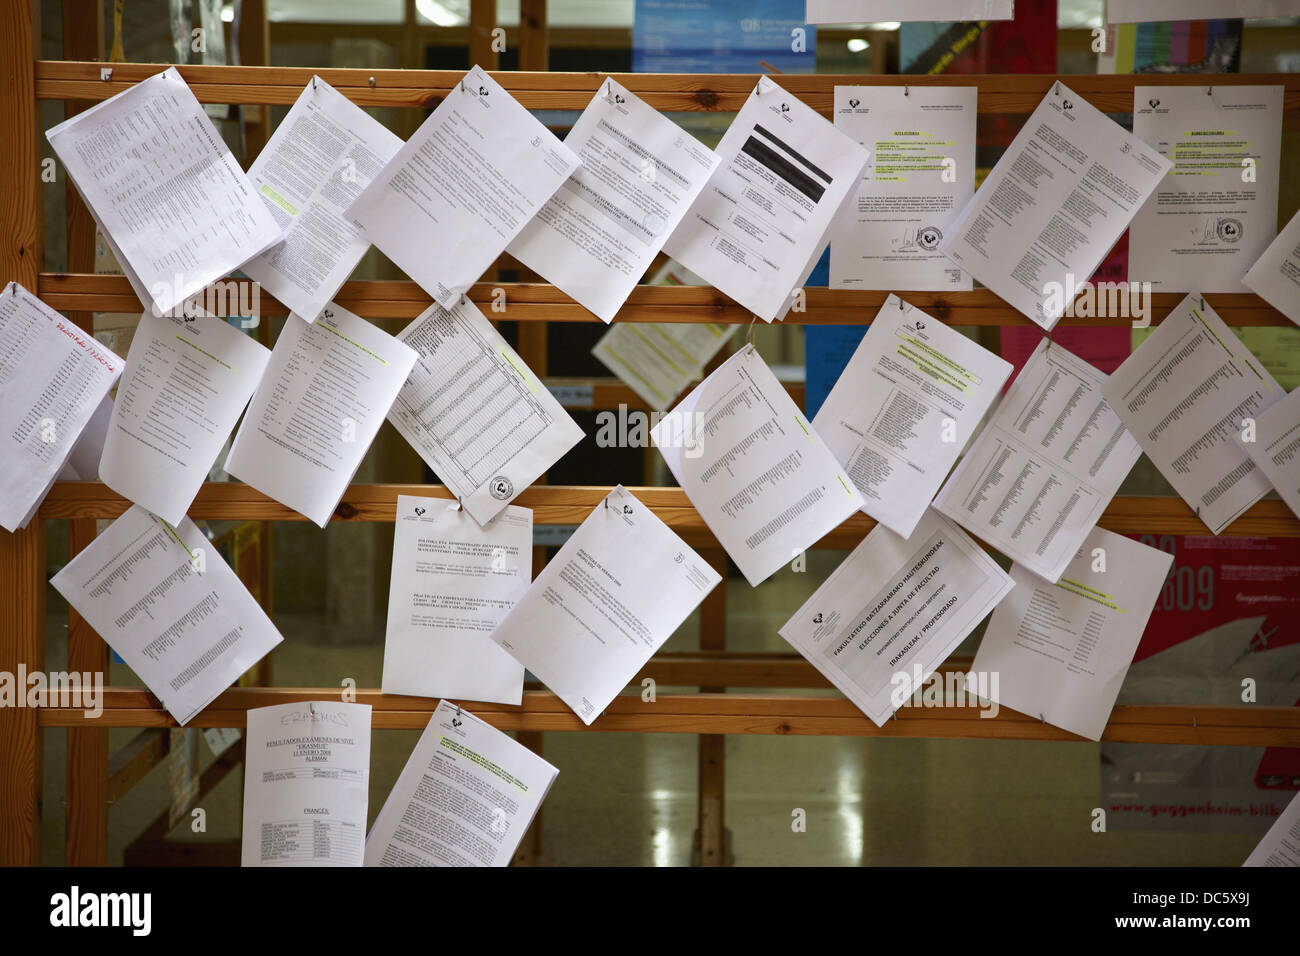 Notice board, School of Journalism and Communications, University of the Basque Country (UPV/ EHU), Leioa campus, - Stock Image